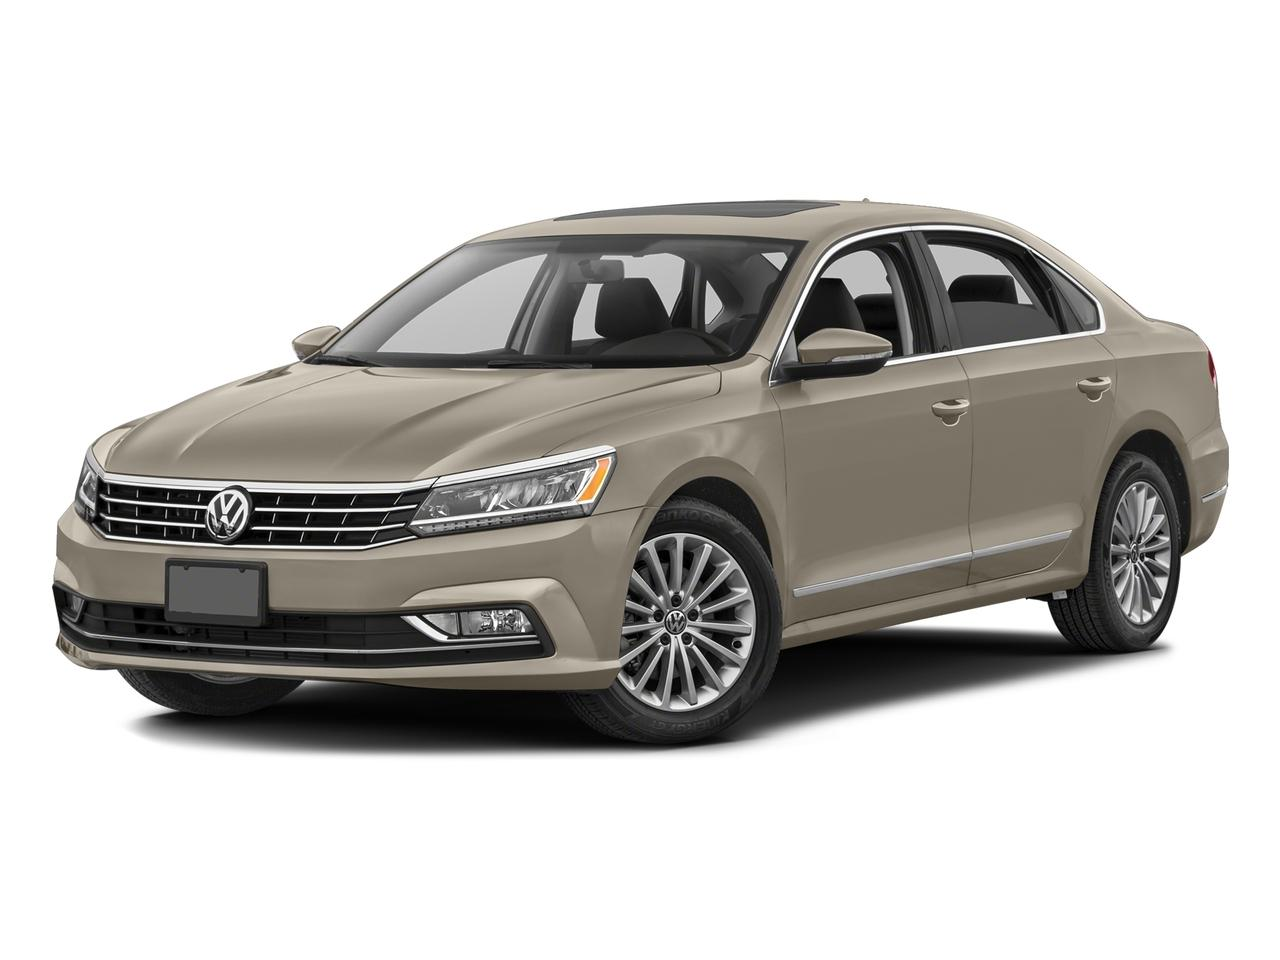 2016 Volkswagen Passat Vehicle Photo in Manassas, VA 20109